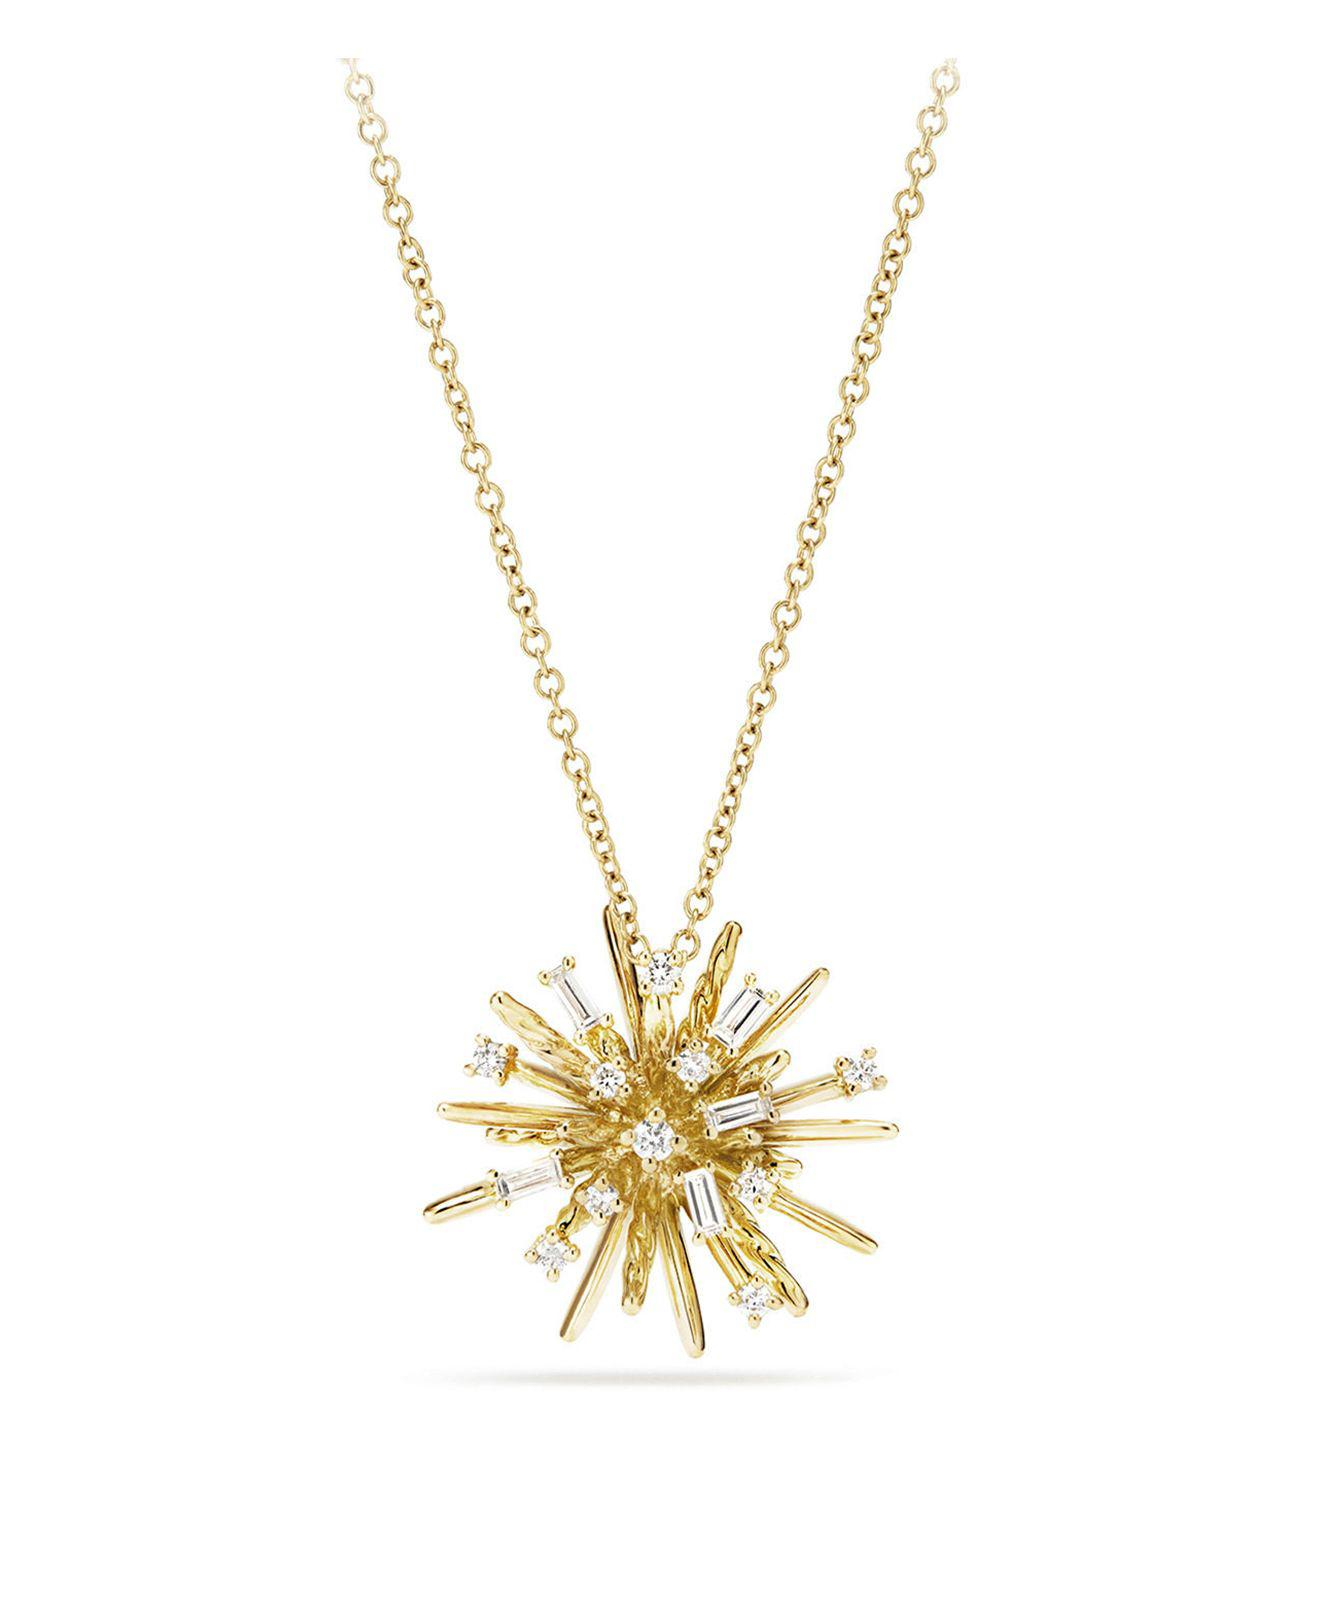 Outlet Choice Extremely Cheap Price 18kt yellow gold Crossover diamond pendant necklace - Metallic David Yurman Discount 2018 wkGtI